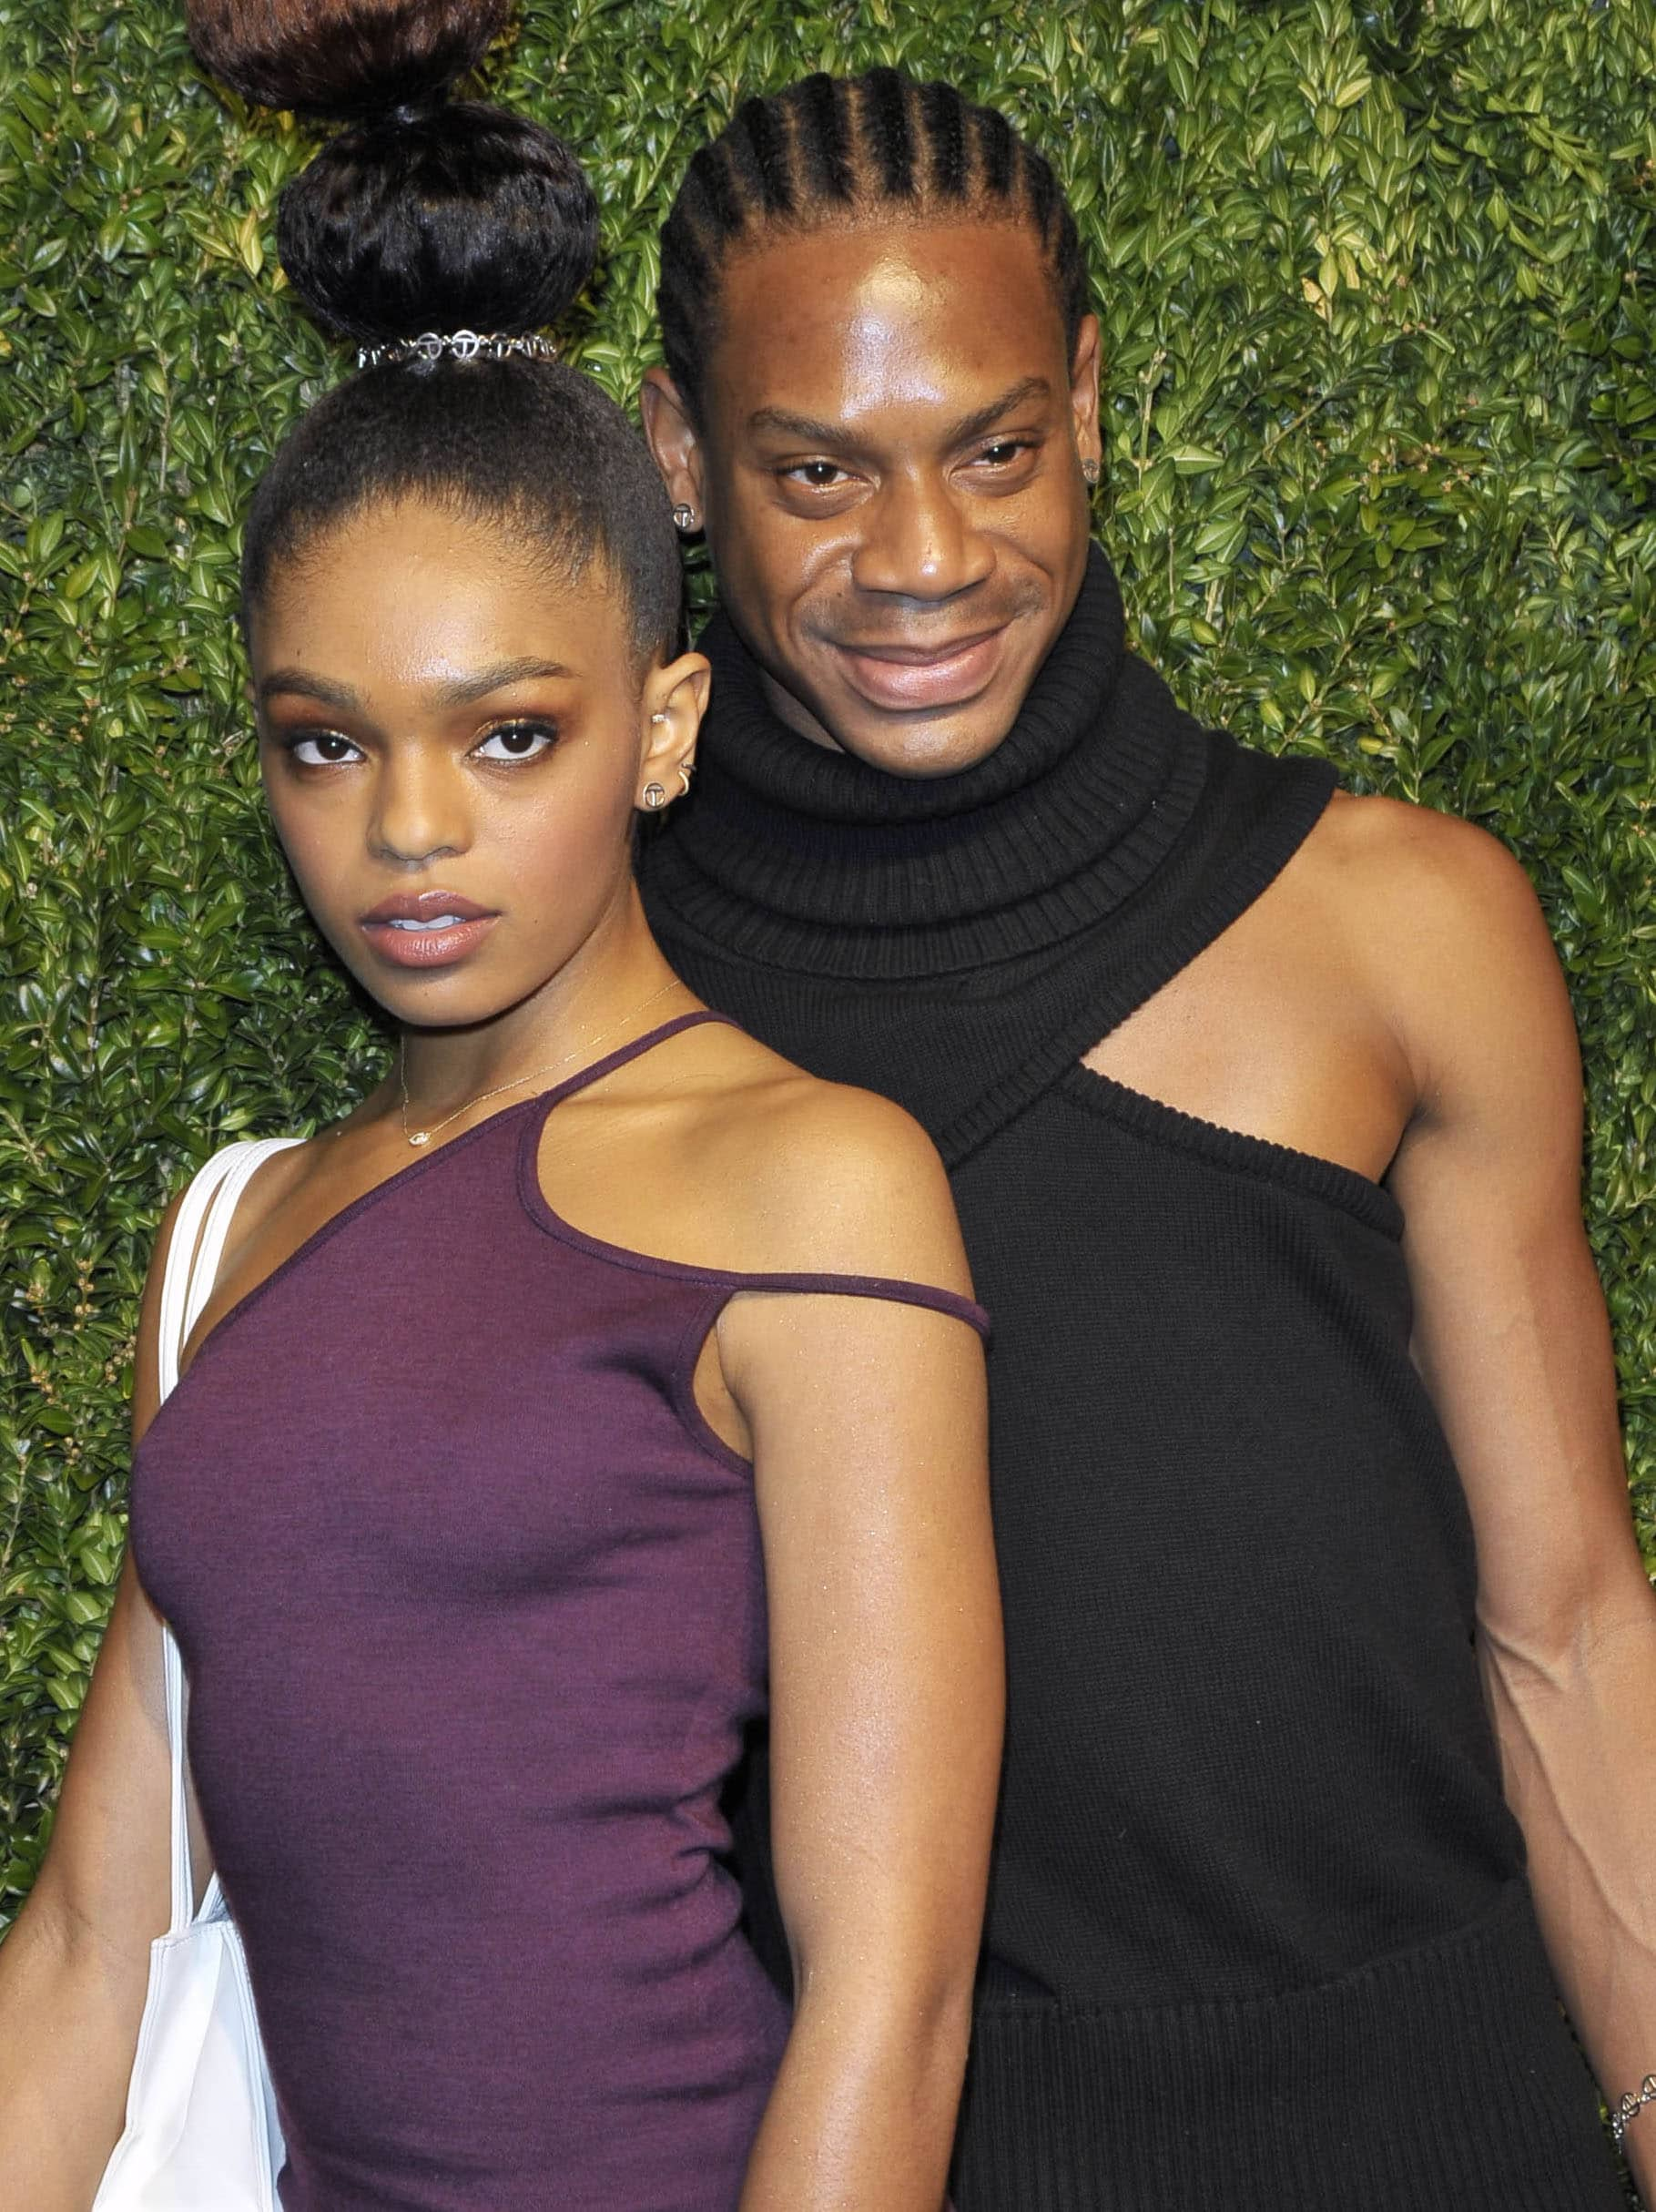 Model Selah Marley with Liberian-American fashion designer Telfar Clemens at the 14th Annual CFDA Fashion Fund Awards in 2017